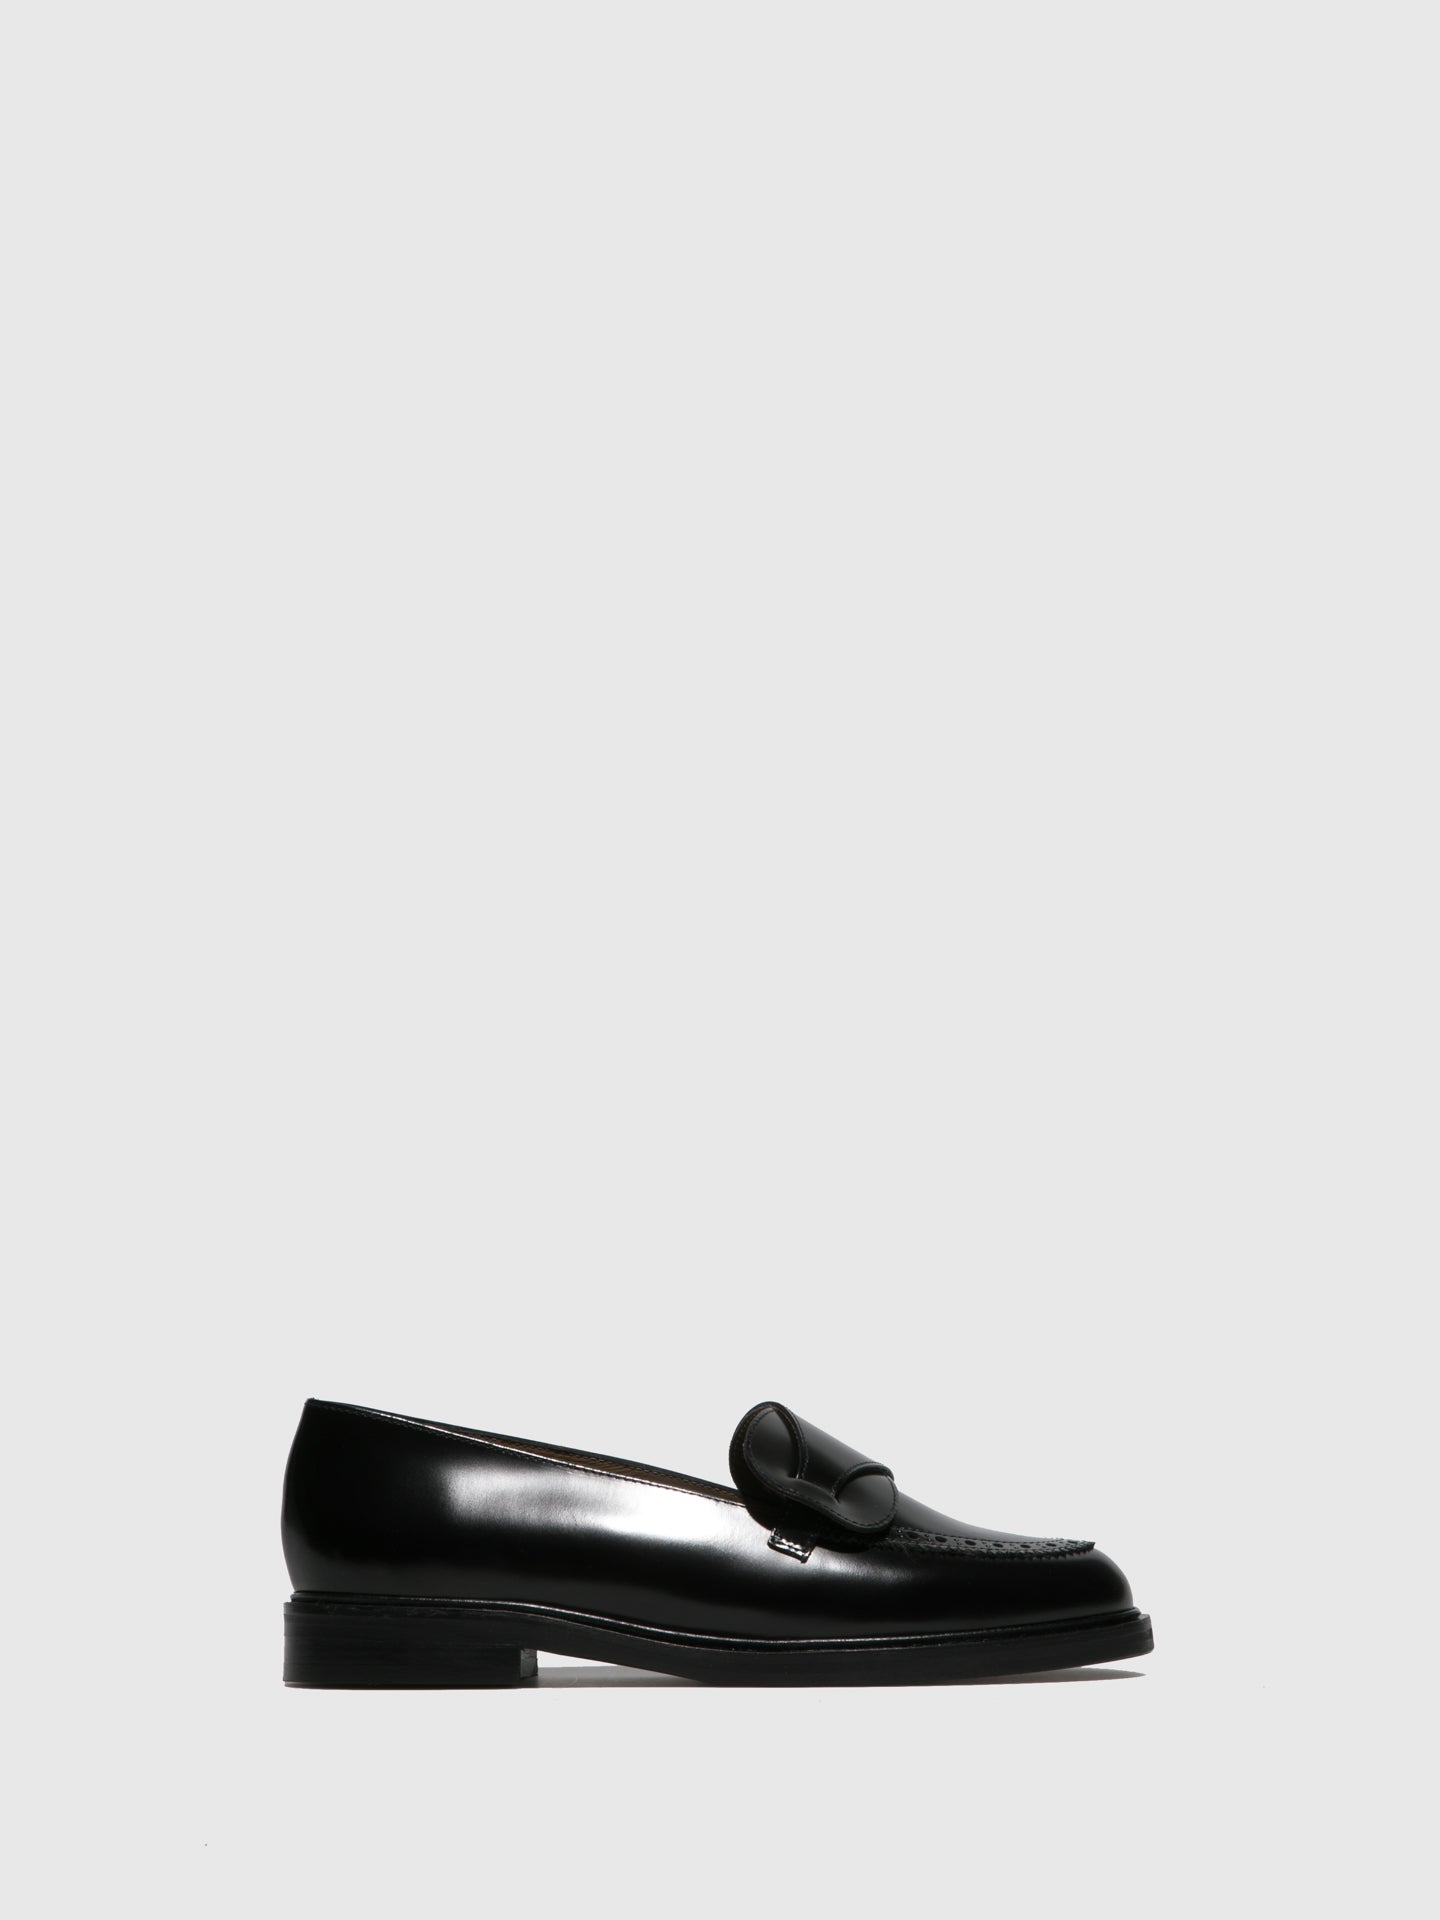 JJ Heitor Black Leather Loafers Shoes